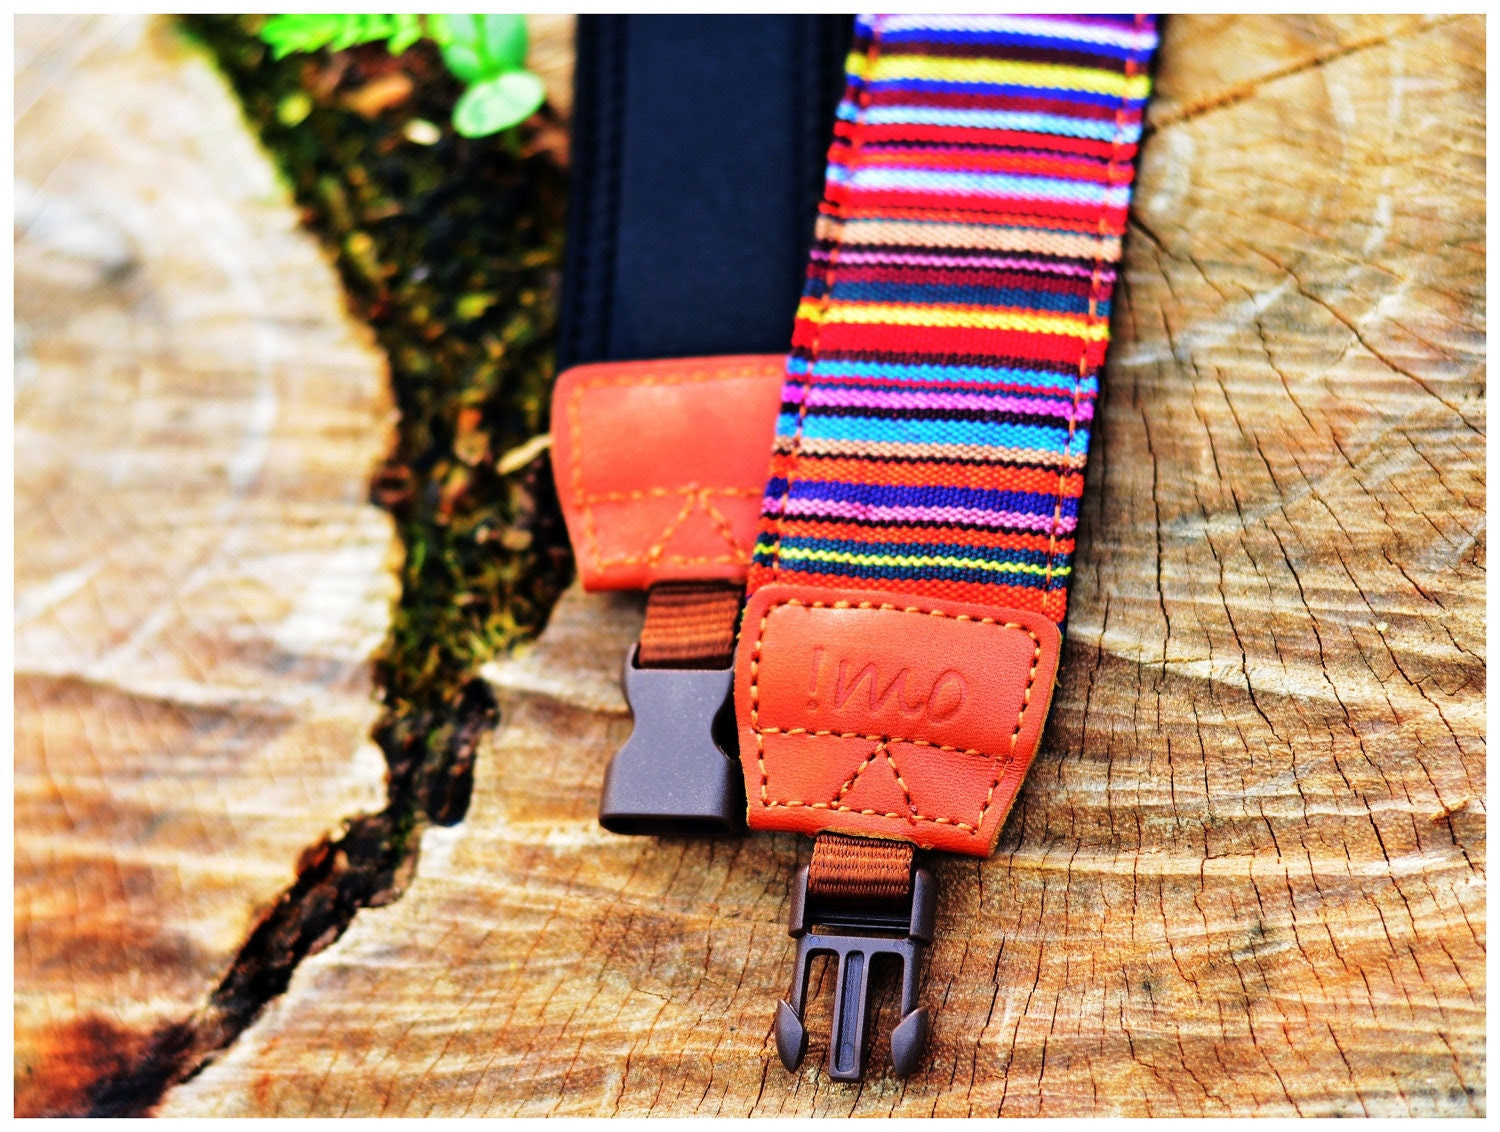 Red Village Camera Strap suits for DSLR / SLR with Quick Release Buckles